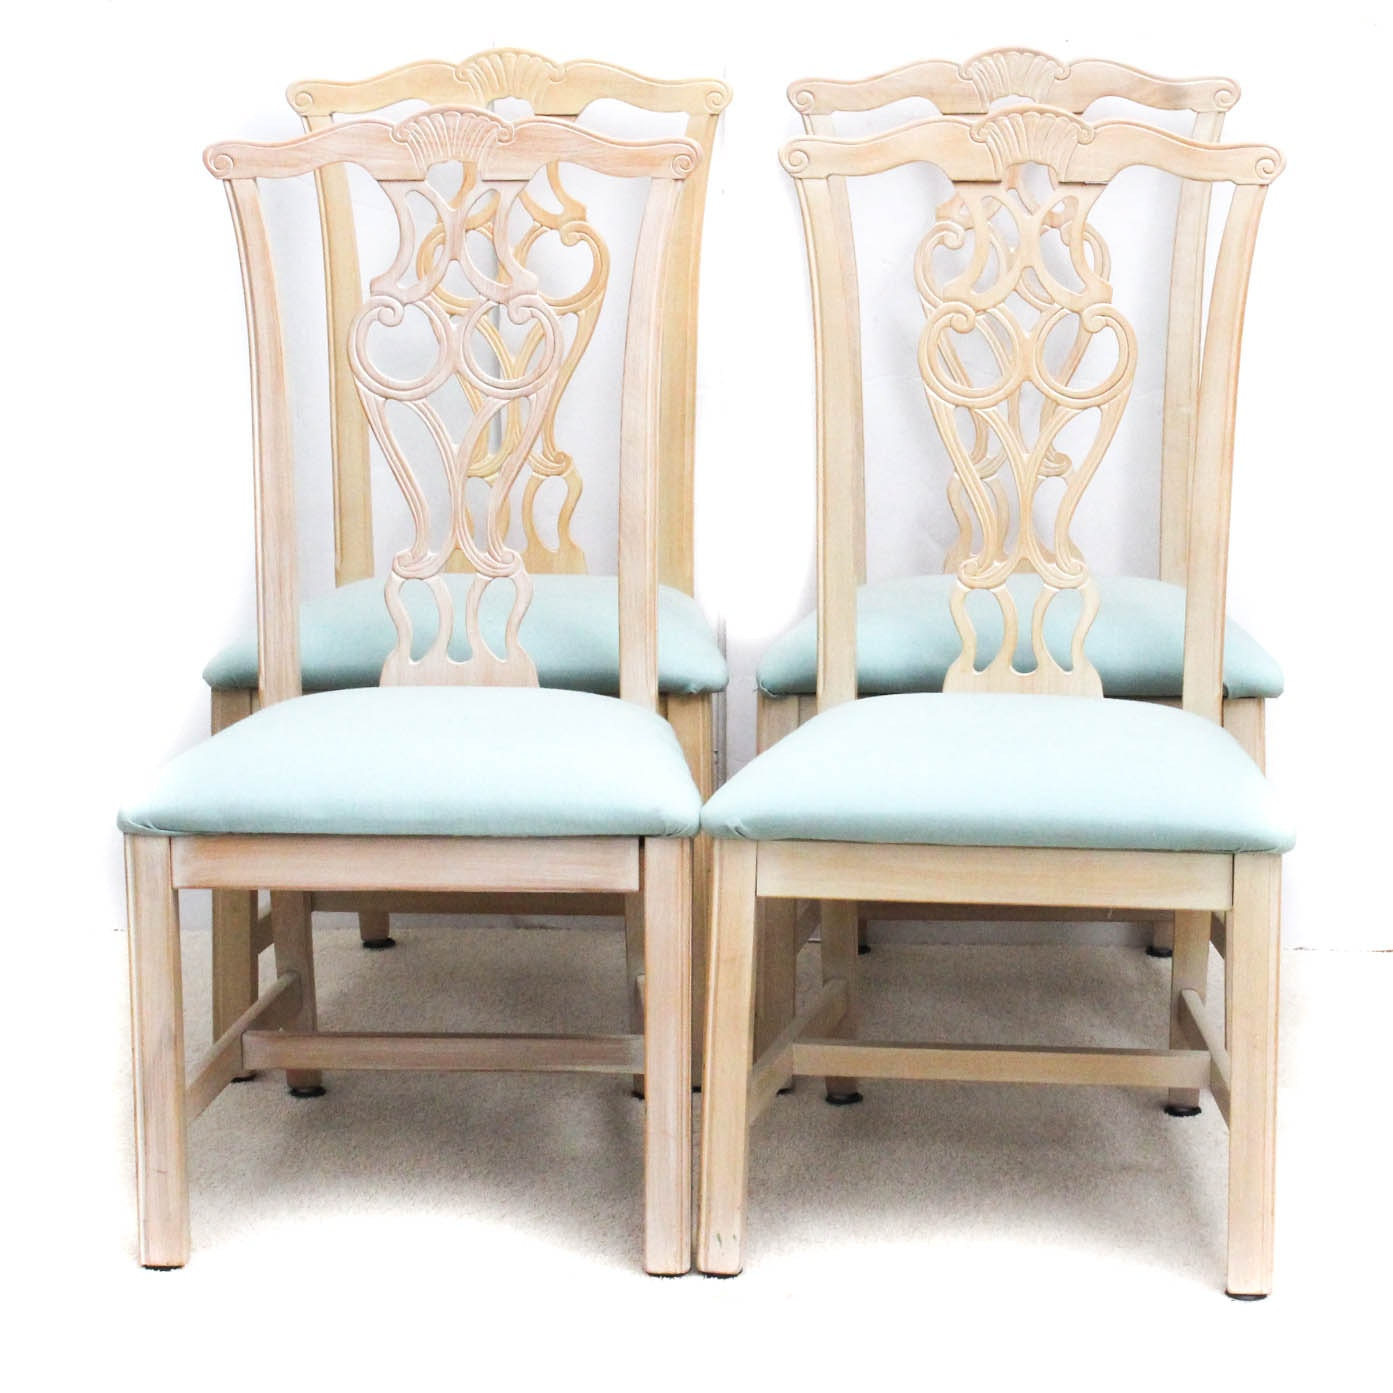 Four Carved Wood Dining Chairs